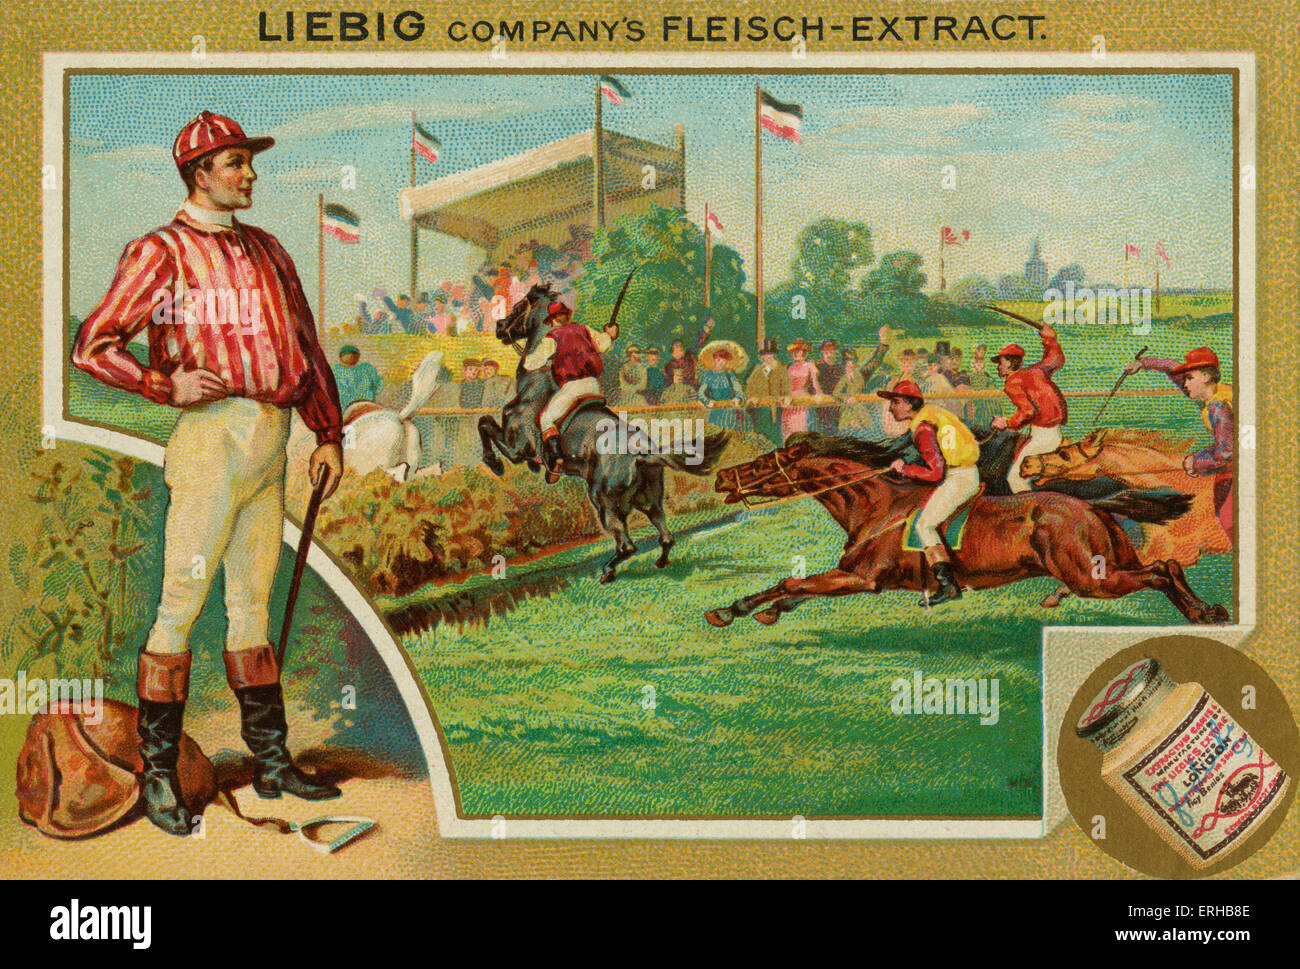 Horse racing. Liebig card, Sports, 1896. - Stock Image